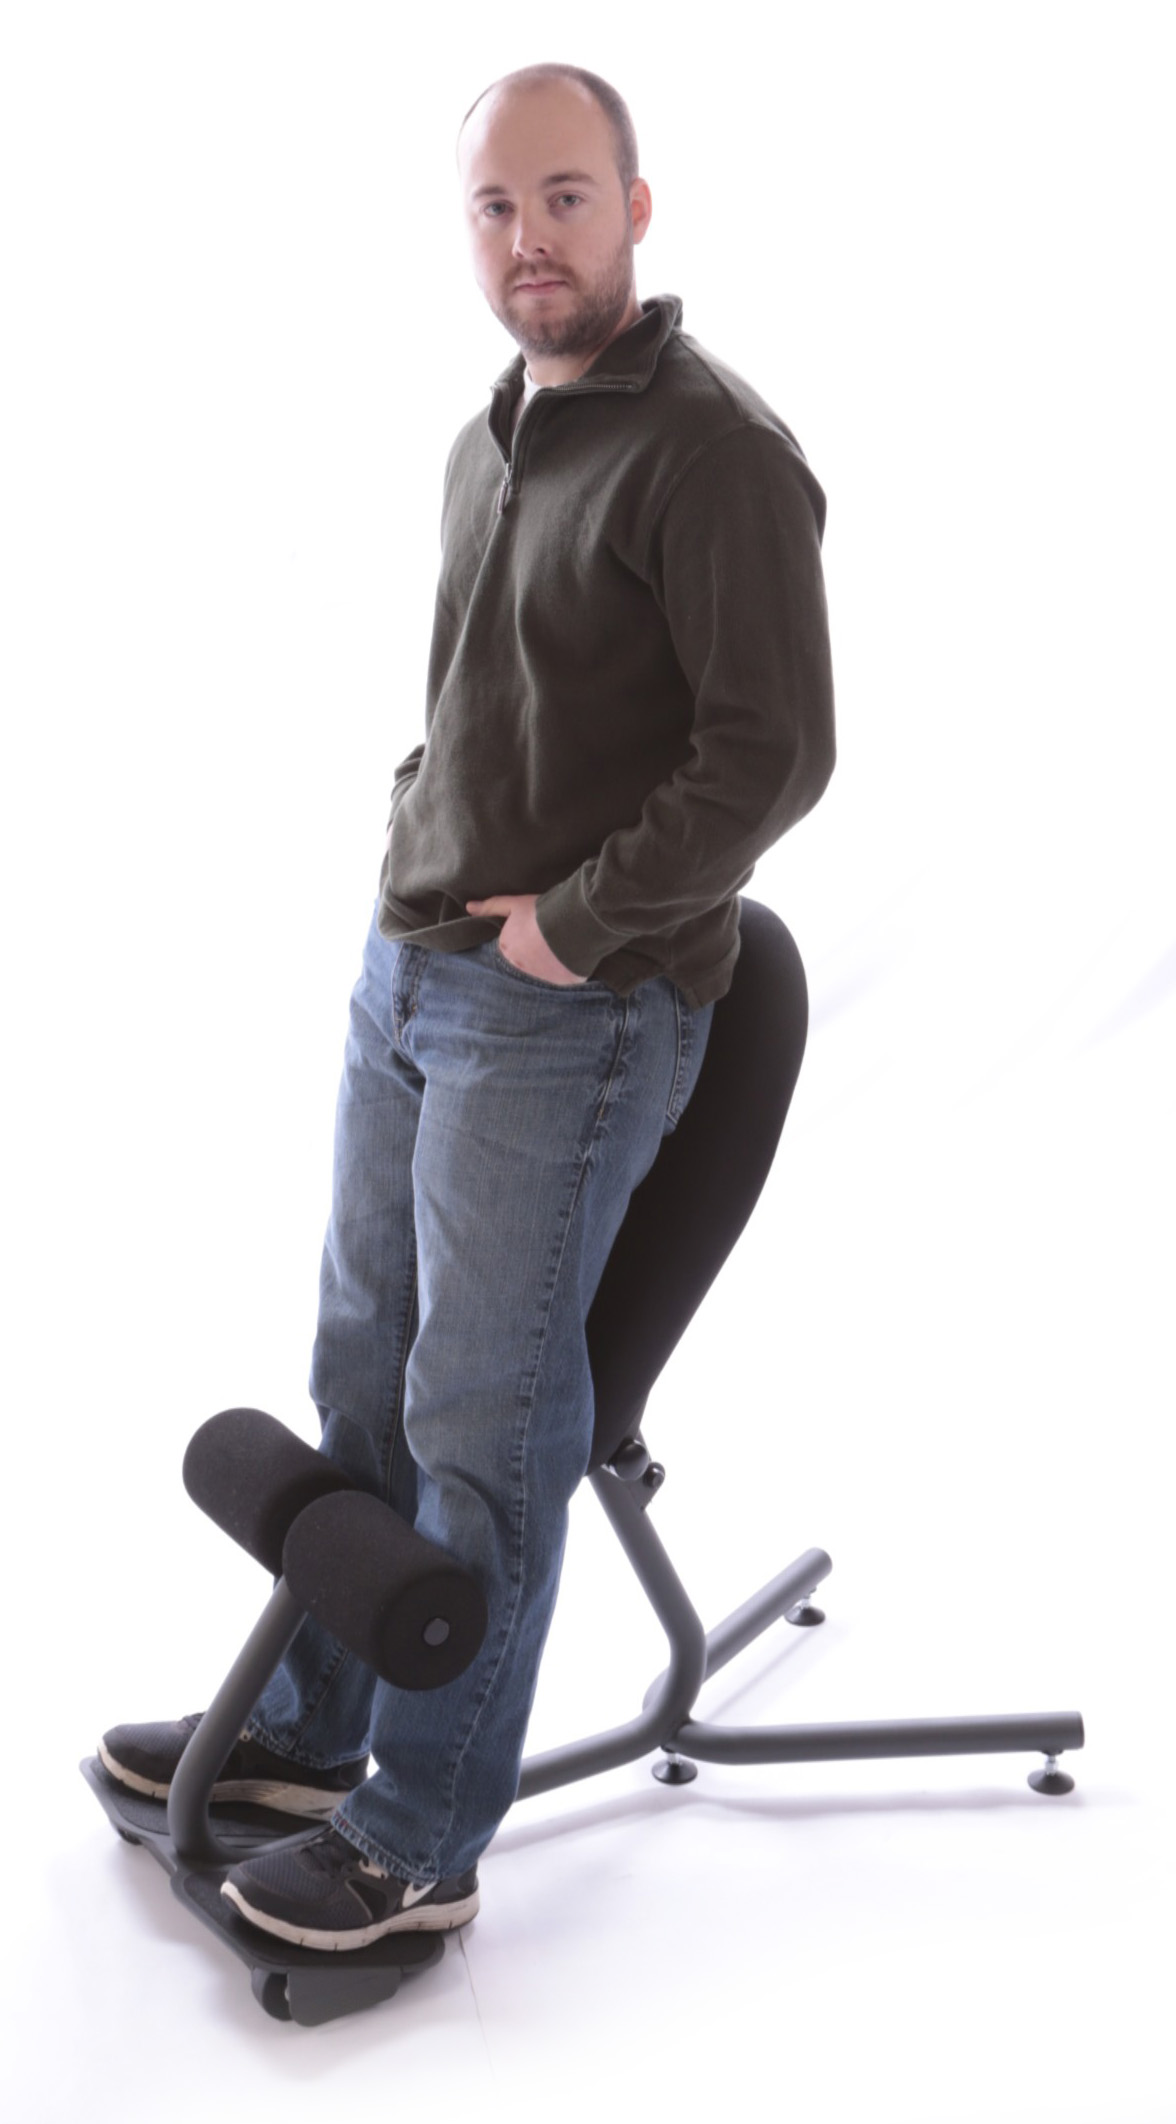 unique standing chair ergonomic intended inspiration decorating